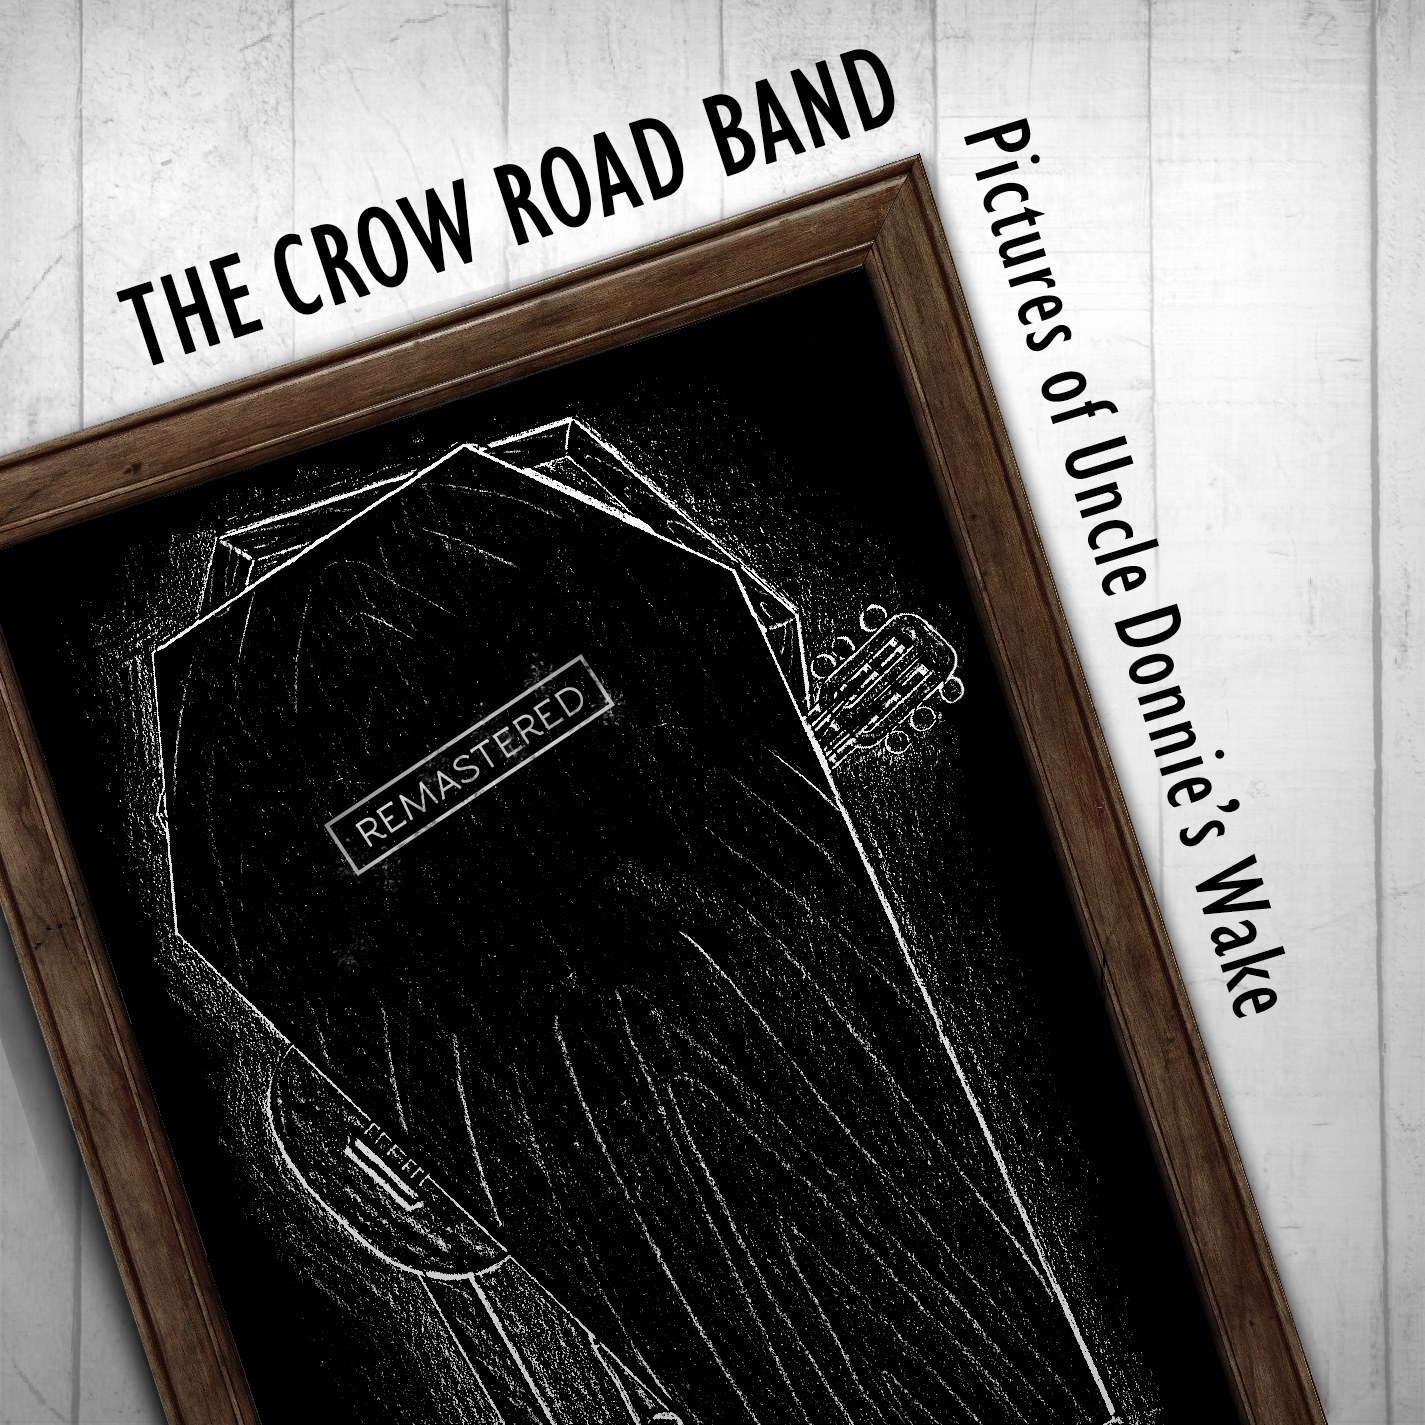 Artist:  The Crow Road Band  Title:  Pictures of Uncle Donnies Wake  Credit:  Mastering  Year:  2017